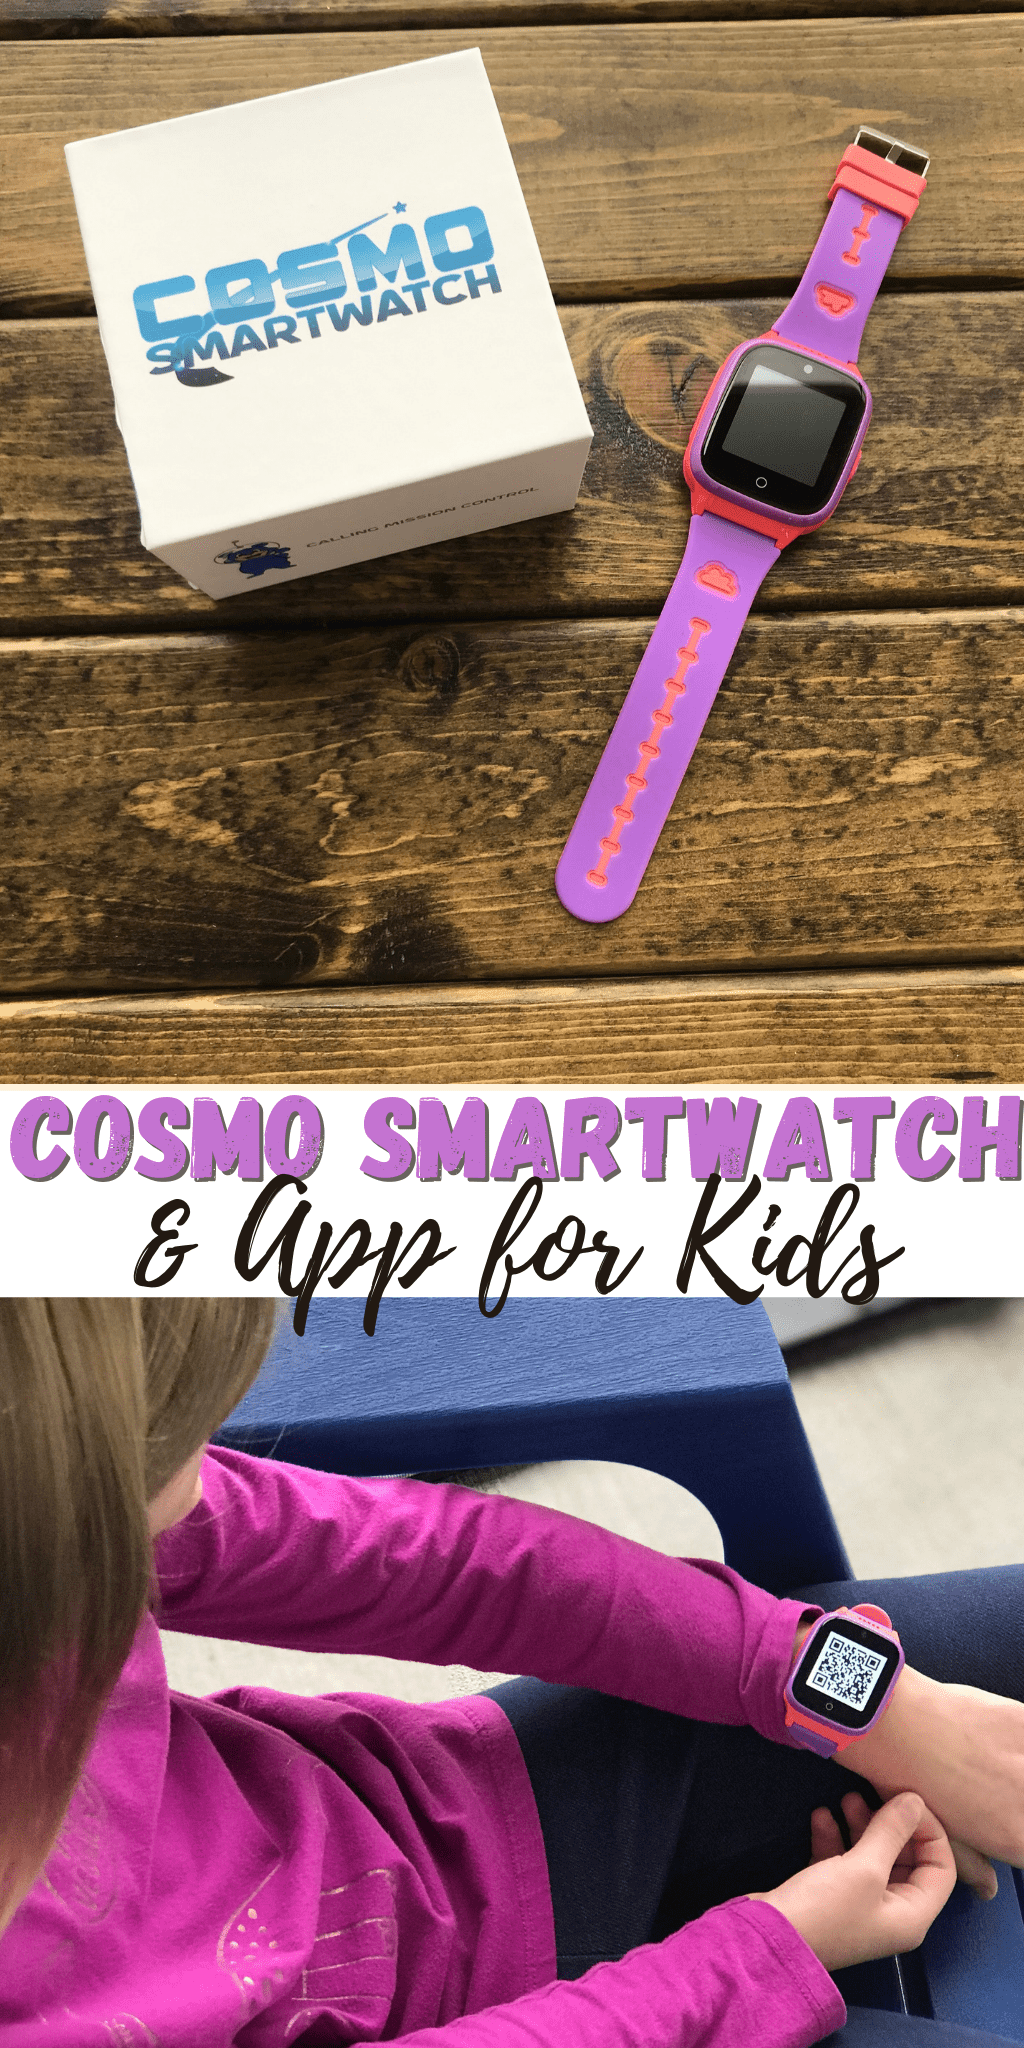 COSMO Smartwatch and App For Kids (and Parents)